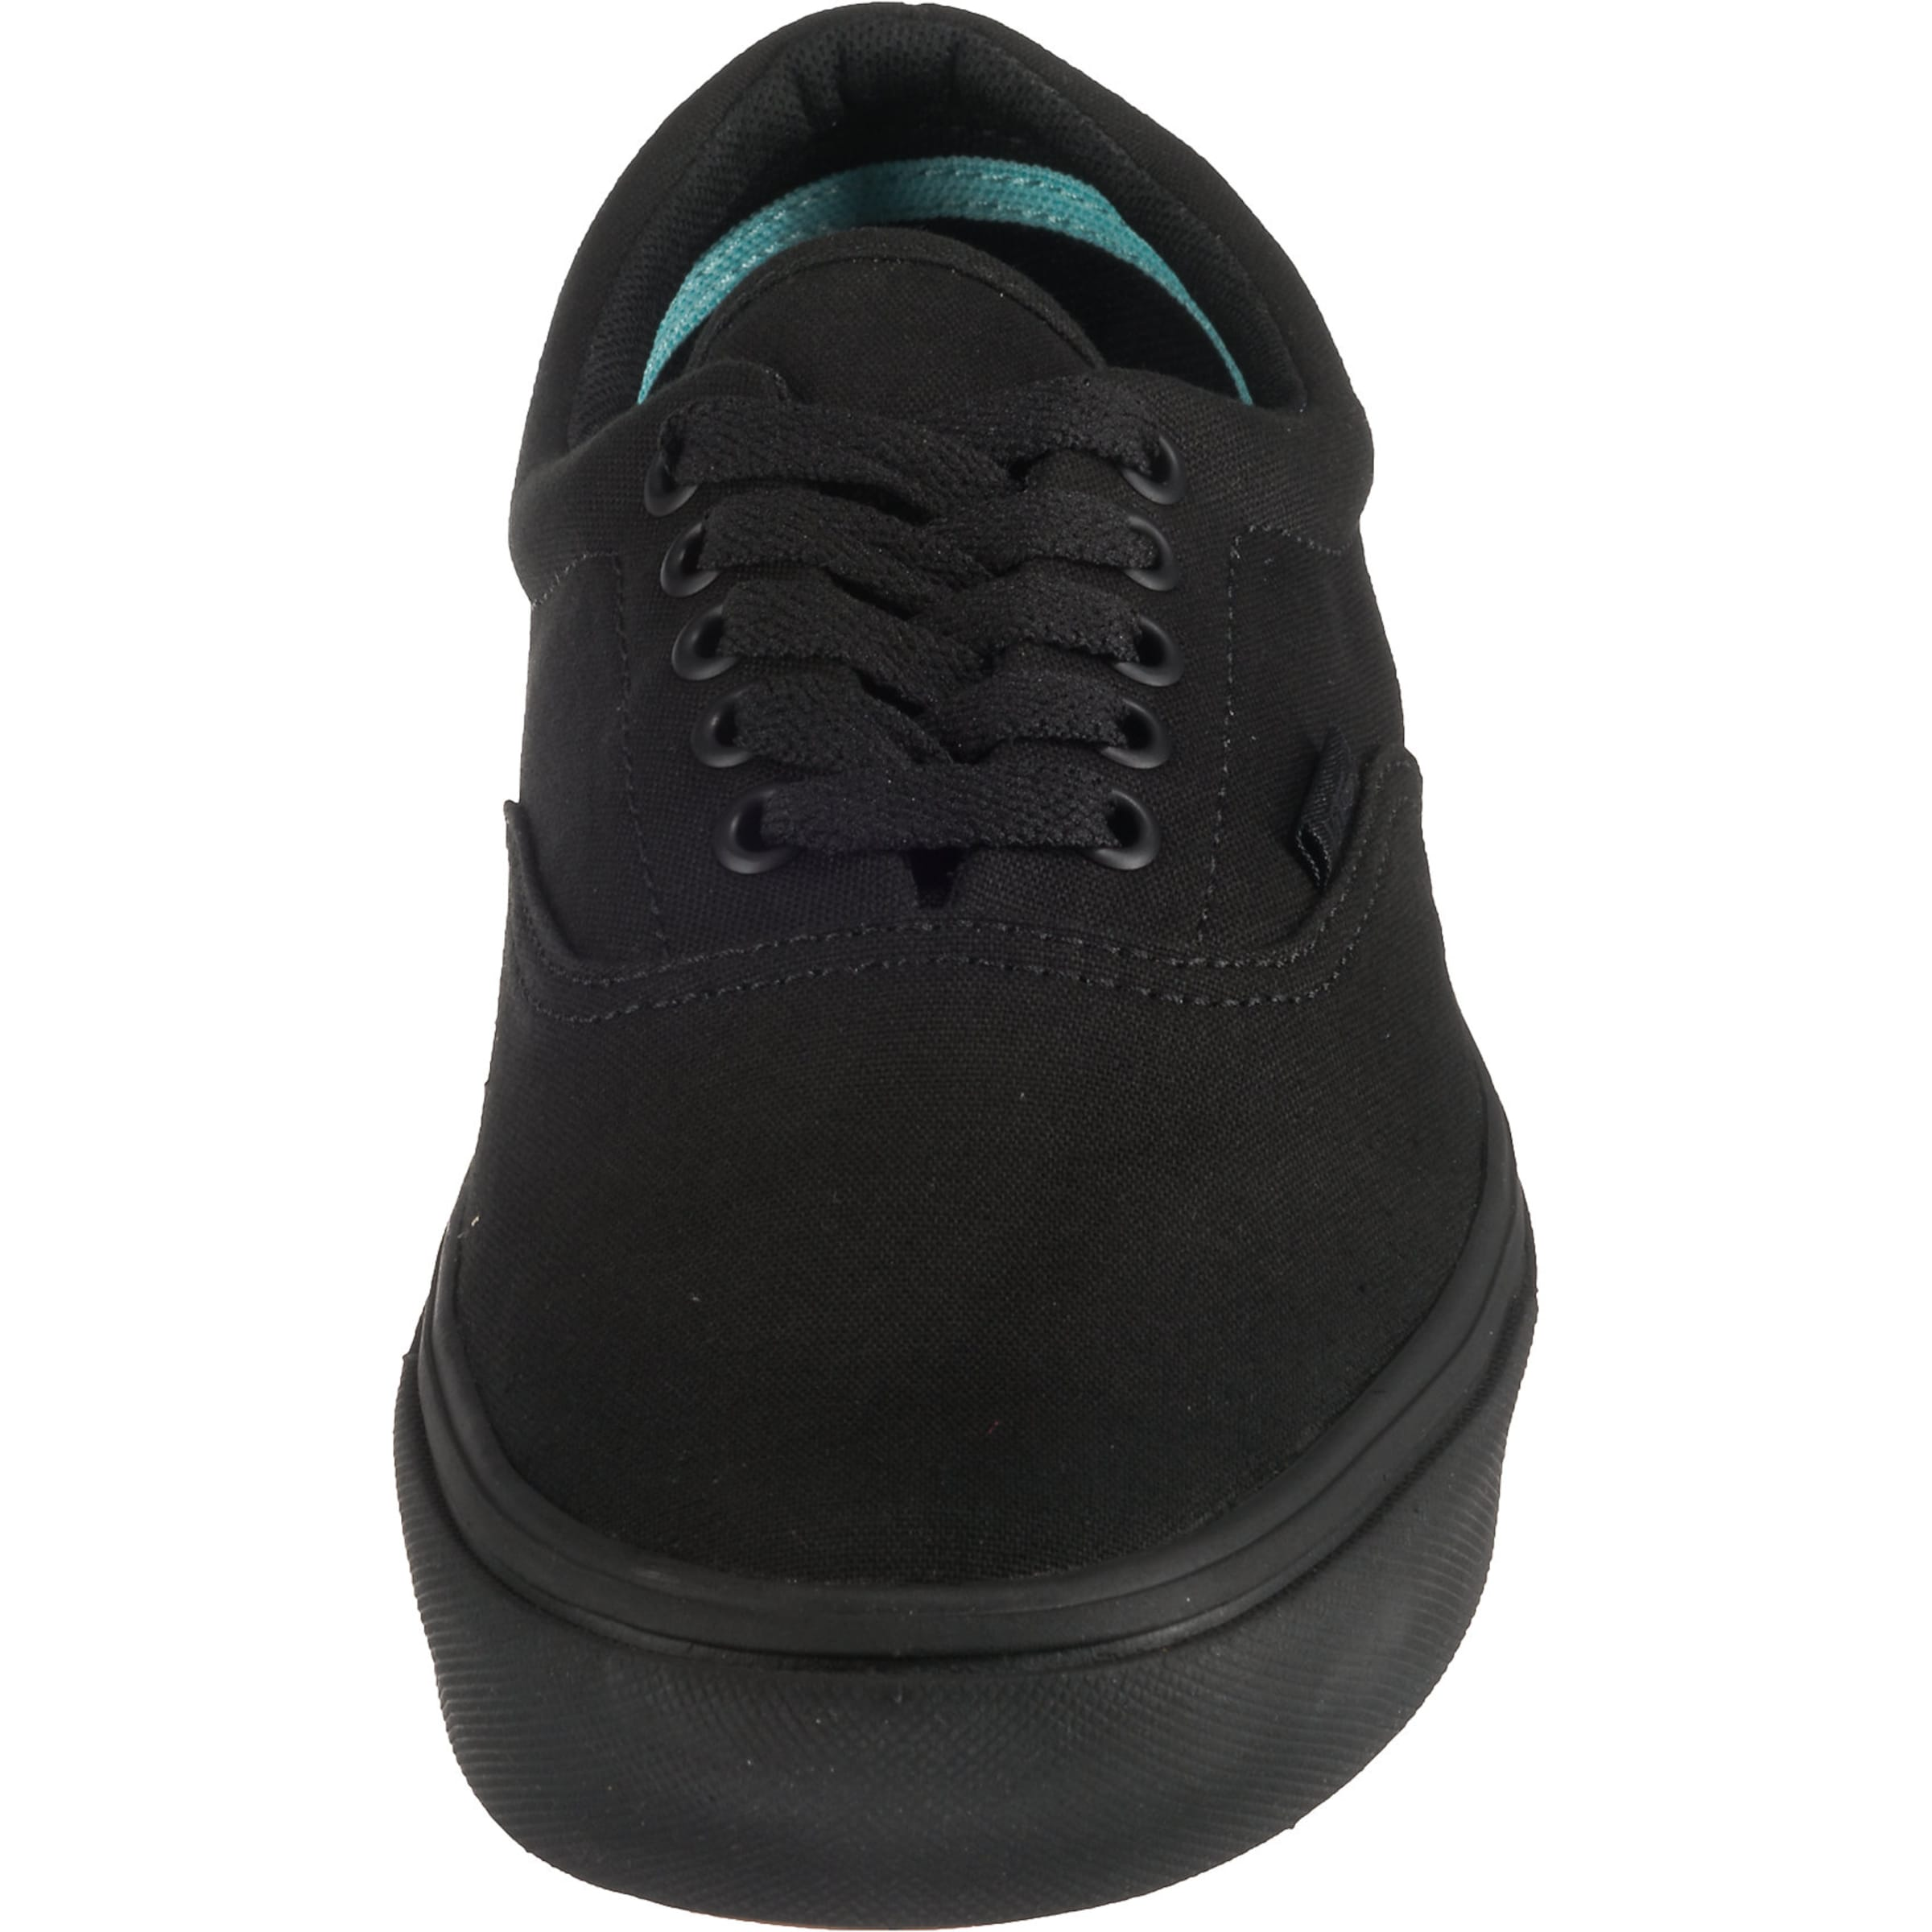 Vans In Sneakers Schwarz 'ua Comfycush Era' 0knwO8P